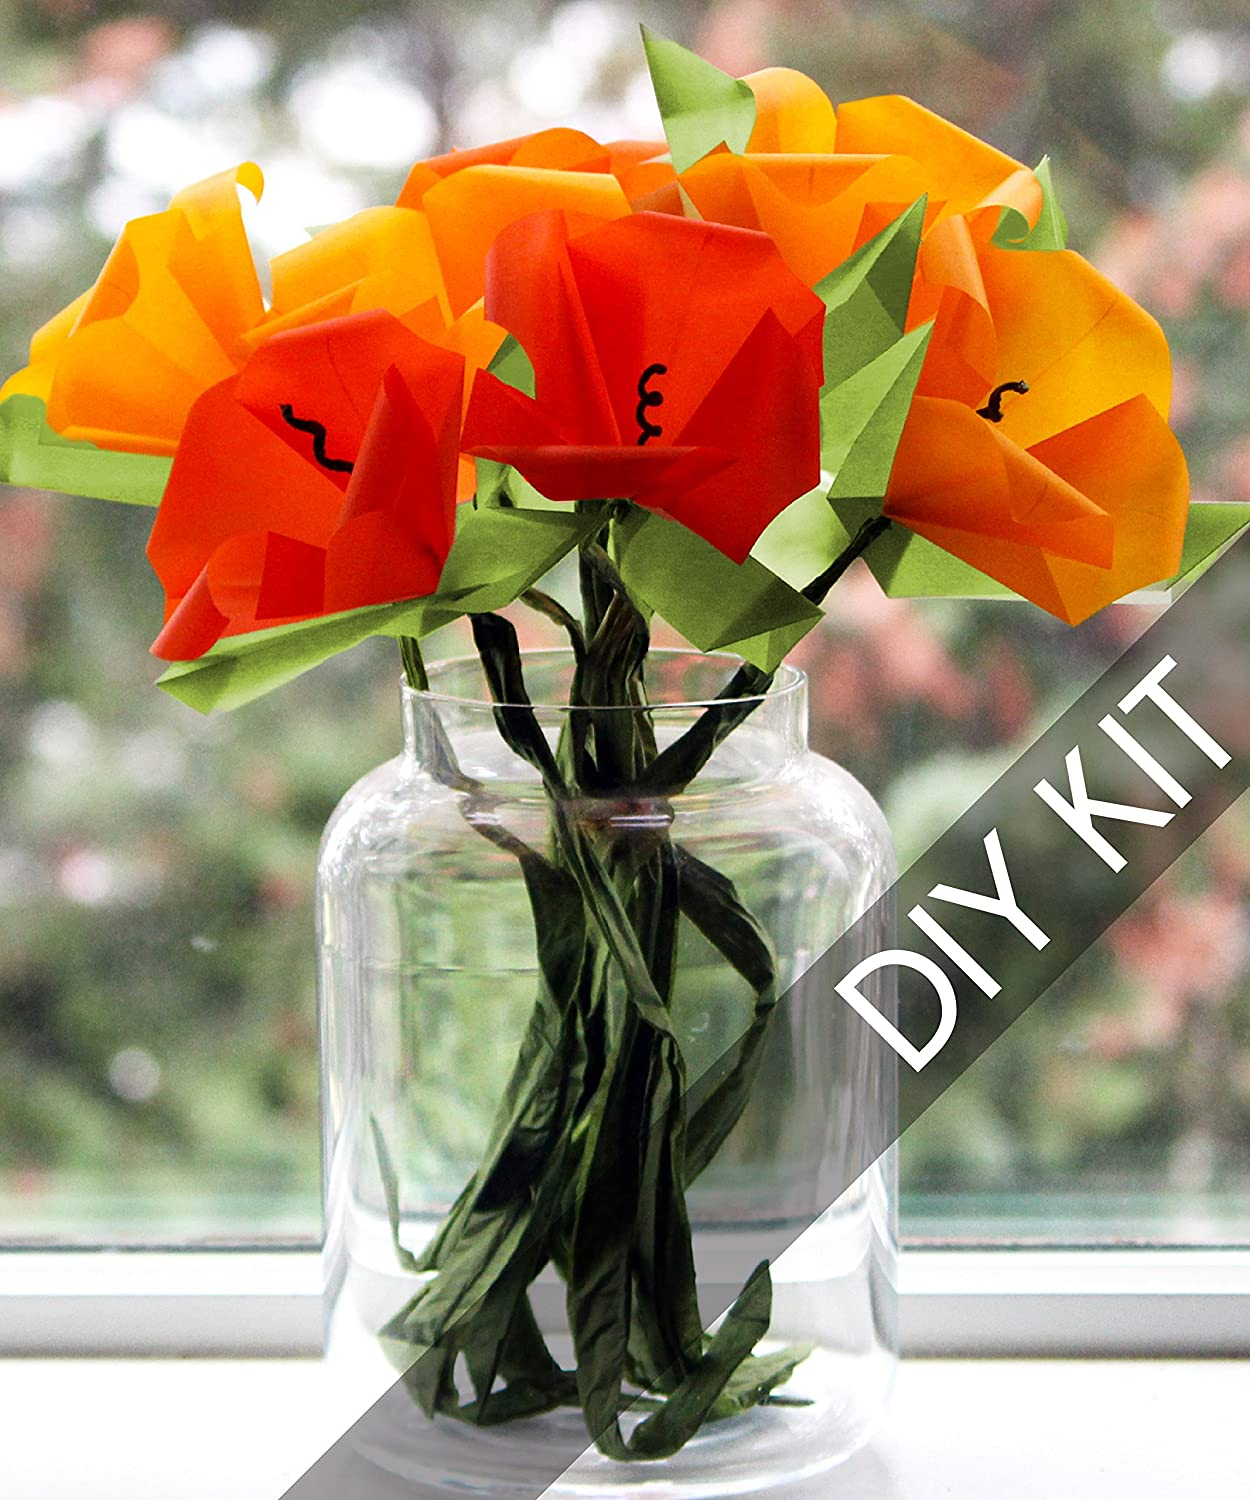 Amazon origami diy kit make your own california poppies amazon origami diy kit make your own california poppies origami flower bouquet origami paper supplies paper flower kits craft art project izmirmasajfo Gallery